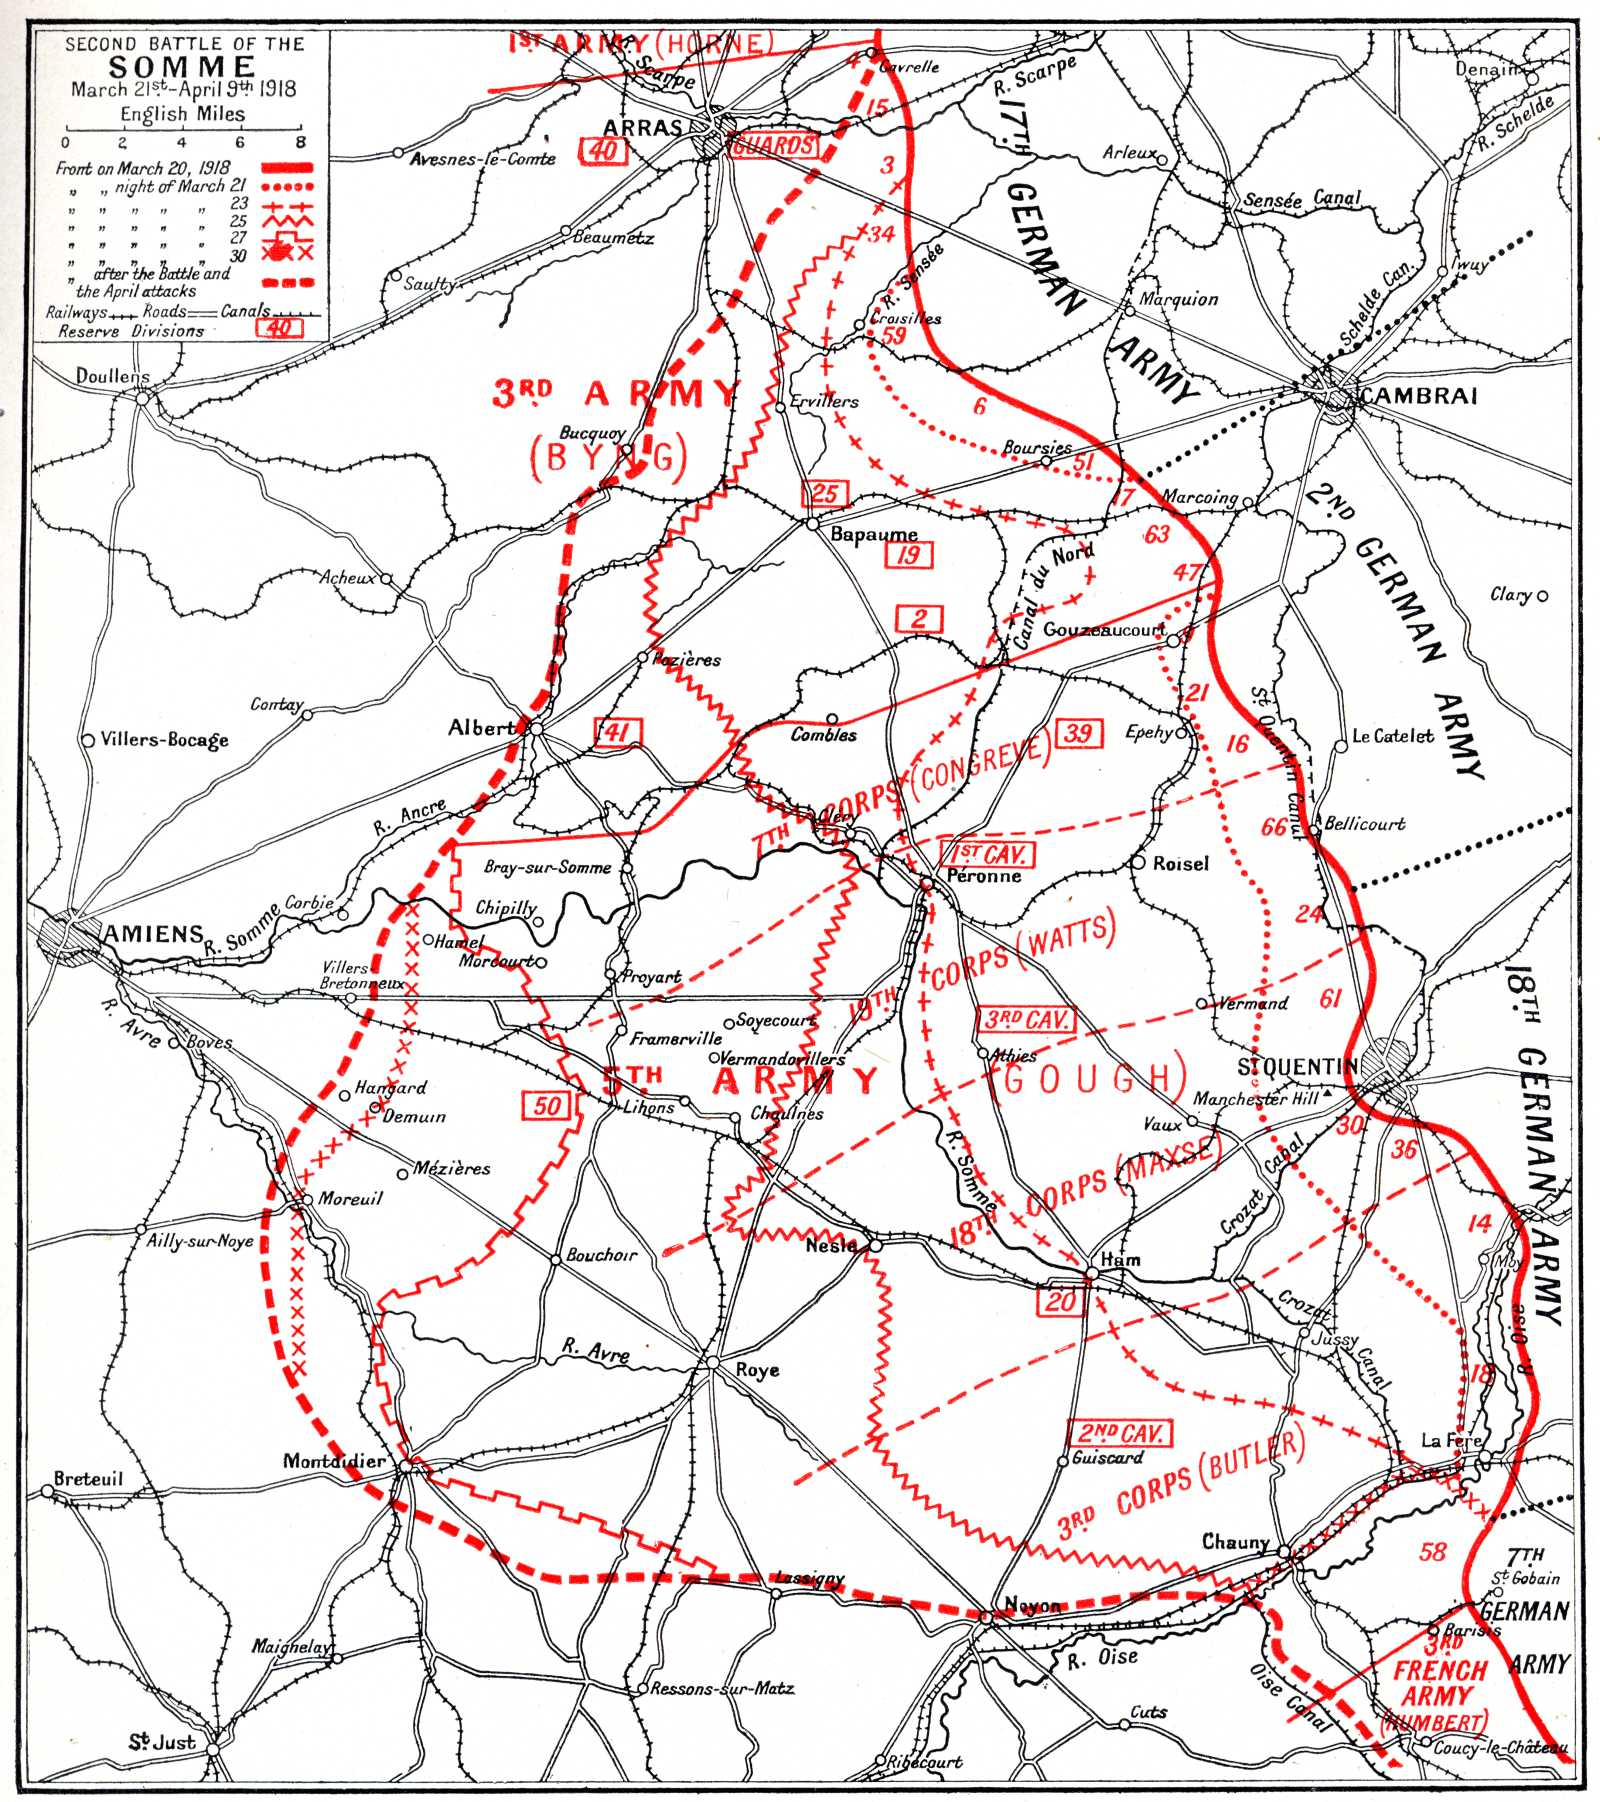 Map of The Second Battle of the Somme